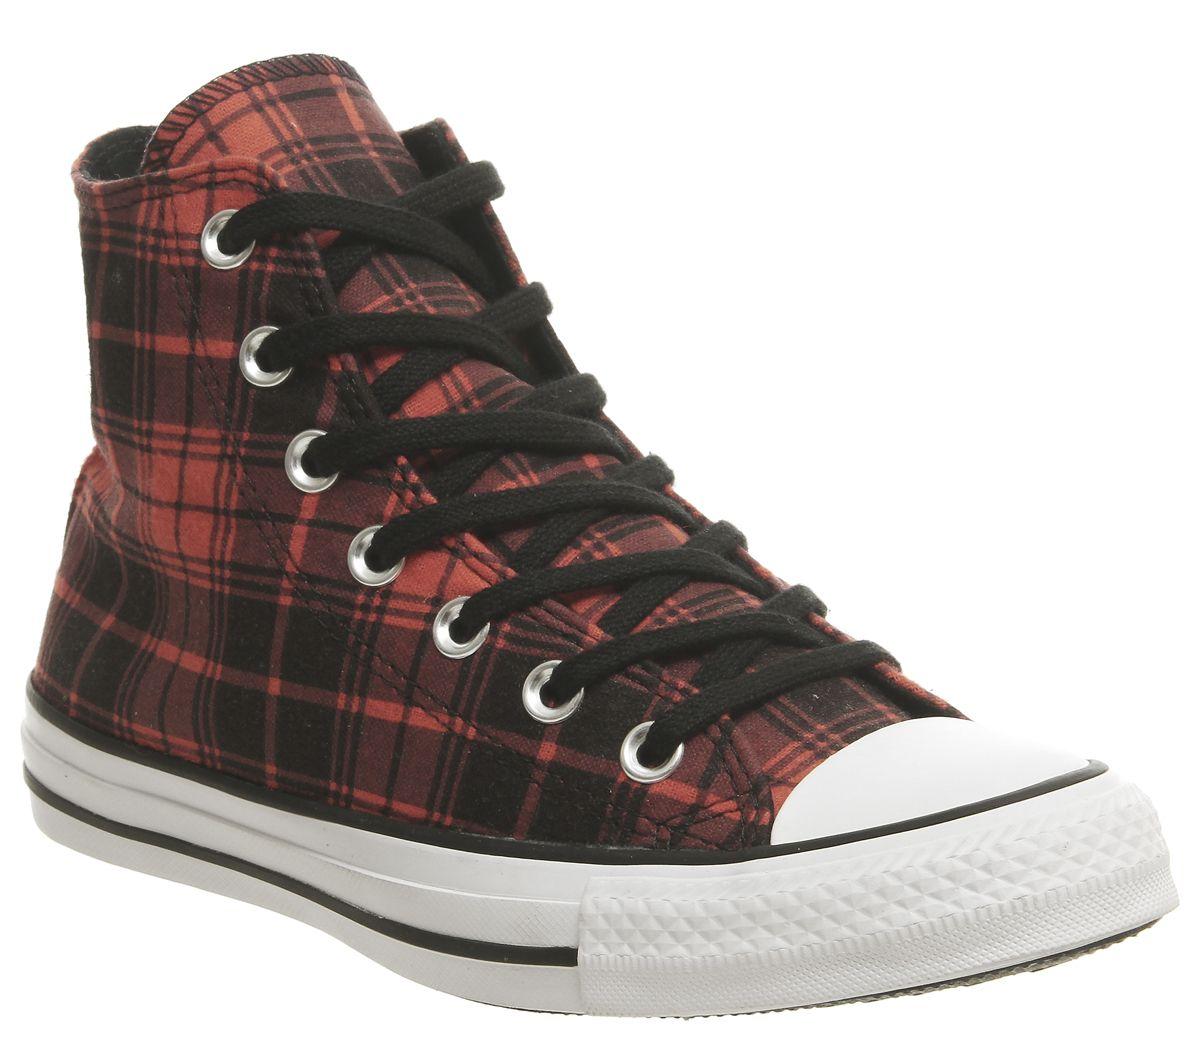 3b88c9563982a8 Sentinel Mens Converse Converse All Star Hi Trainers Bright Poppy Black  Trainers Shoes